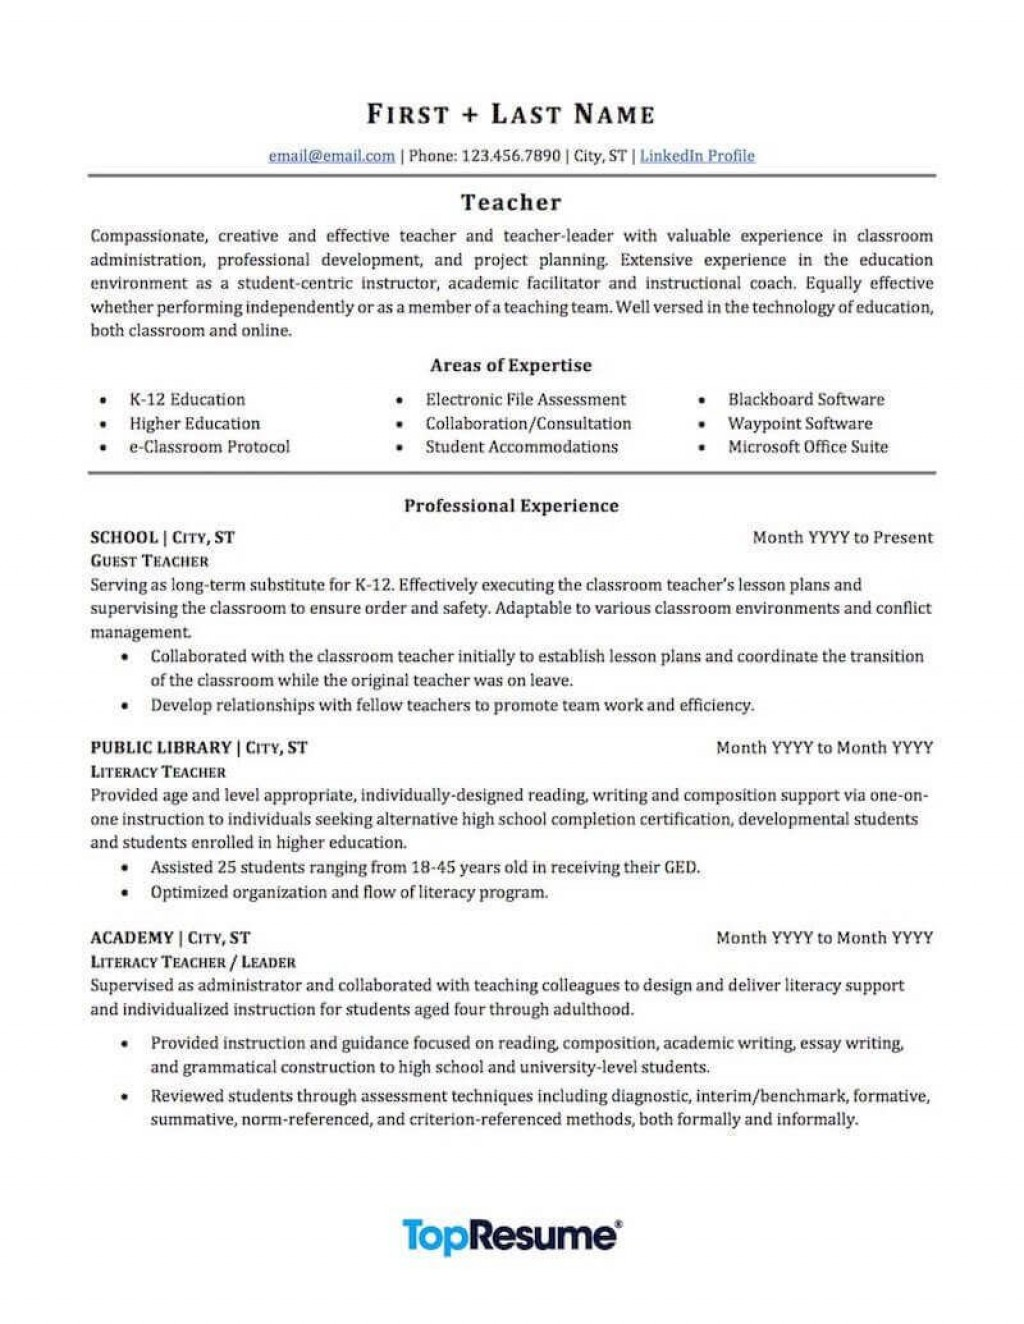 005 Awful Good Resume For Teaching Job High Resolution  Sample With Experience Pdf Fresher In IndiaLarge